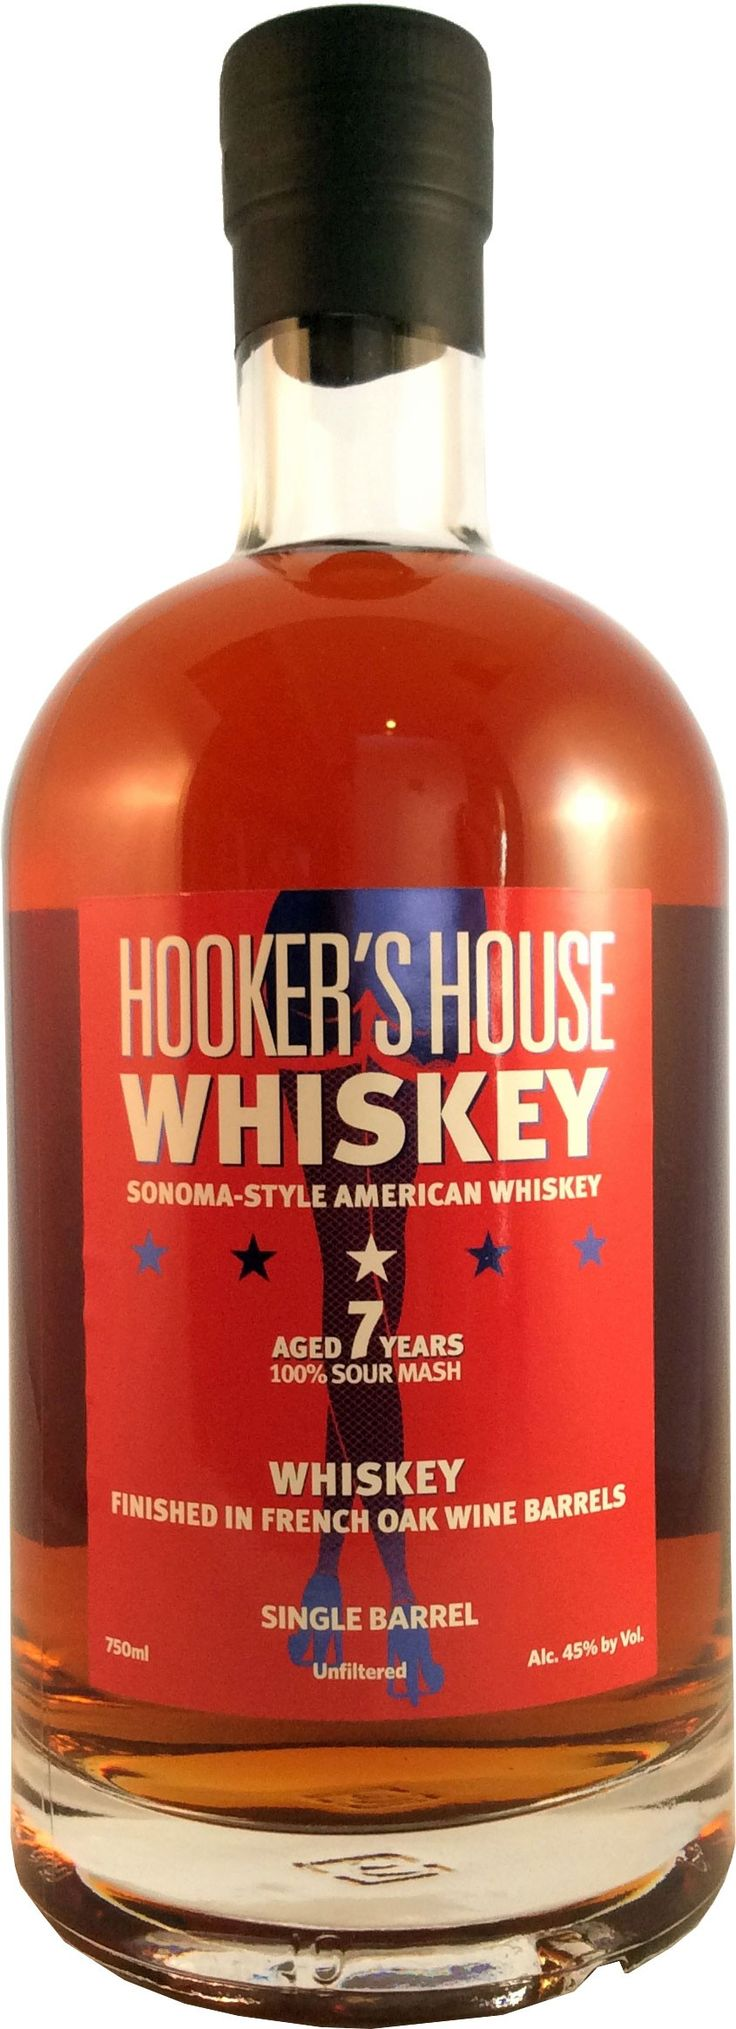 Aged for five years in American oak casks, this whiskey is matured for an additional two years in casks that were previously used to mature wine.